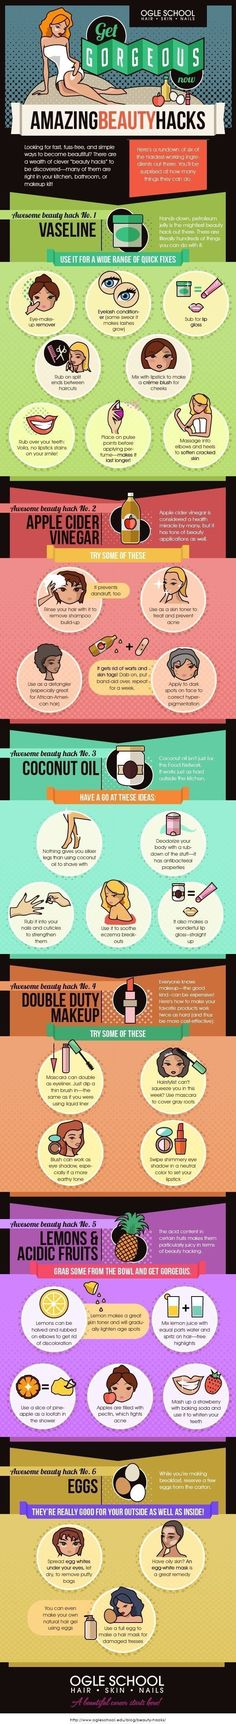 diy beauty hacks. DIY Tips, Tricks, And Beauty Hacks Every Girl Should Know. For Teens with Acne, To Makeup For Natural Looks Or Shaving. Stuff For Skincare, For Hair, For Overnight Treatment, For Eyelashes, Nails, Eyebrows, Teeth, Blackheads, For Skin,